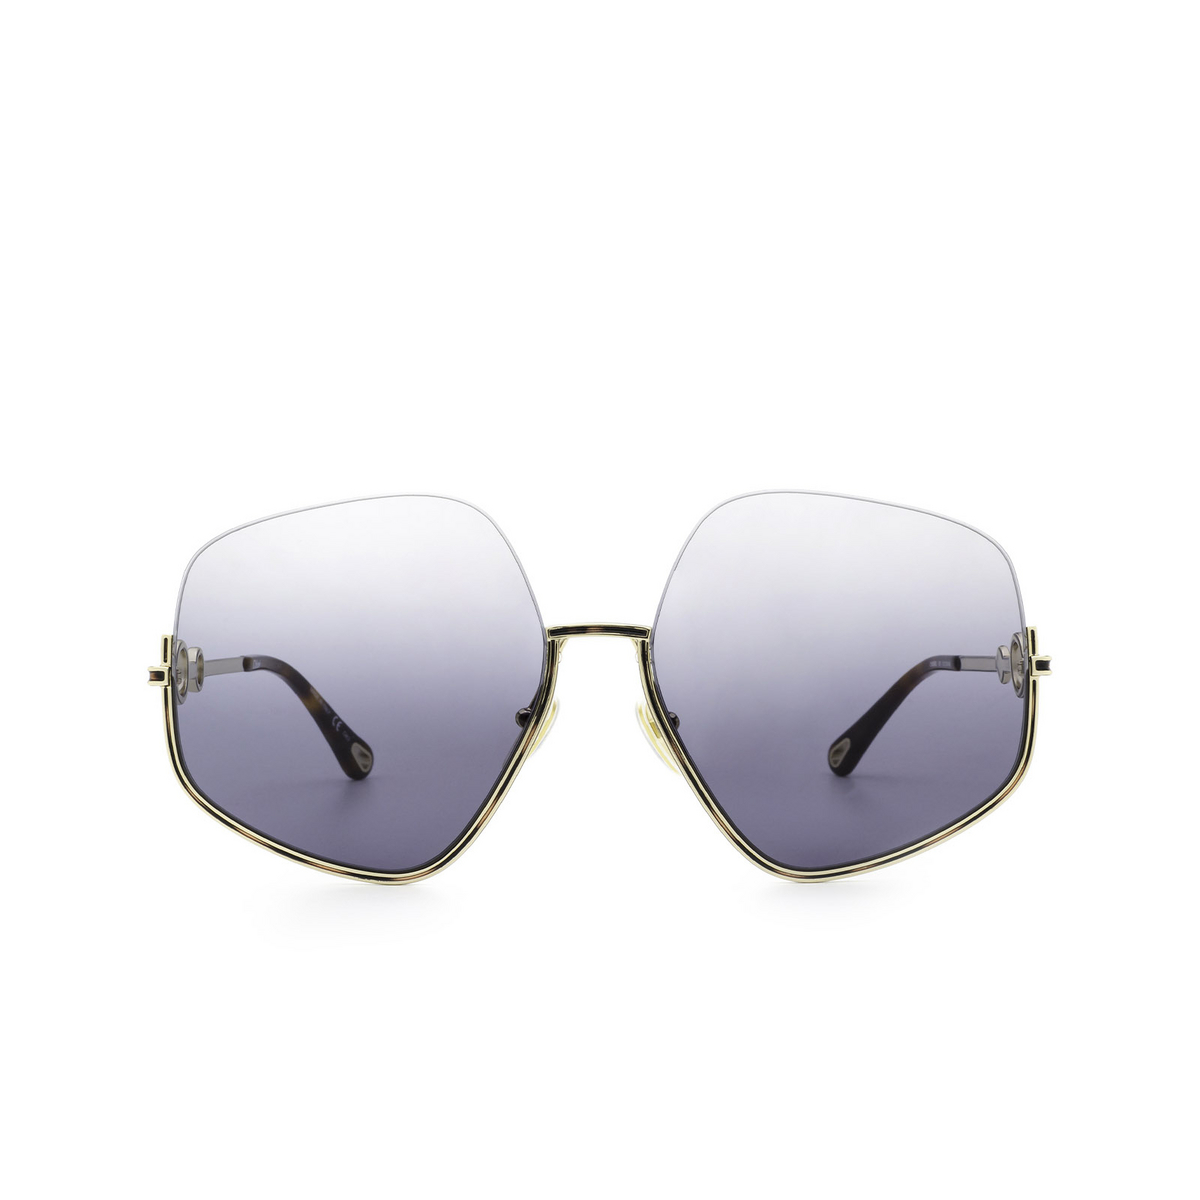 Chloé® Irregular Sunglasses: CH0068S color Gold 001 - front view.